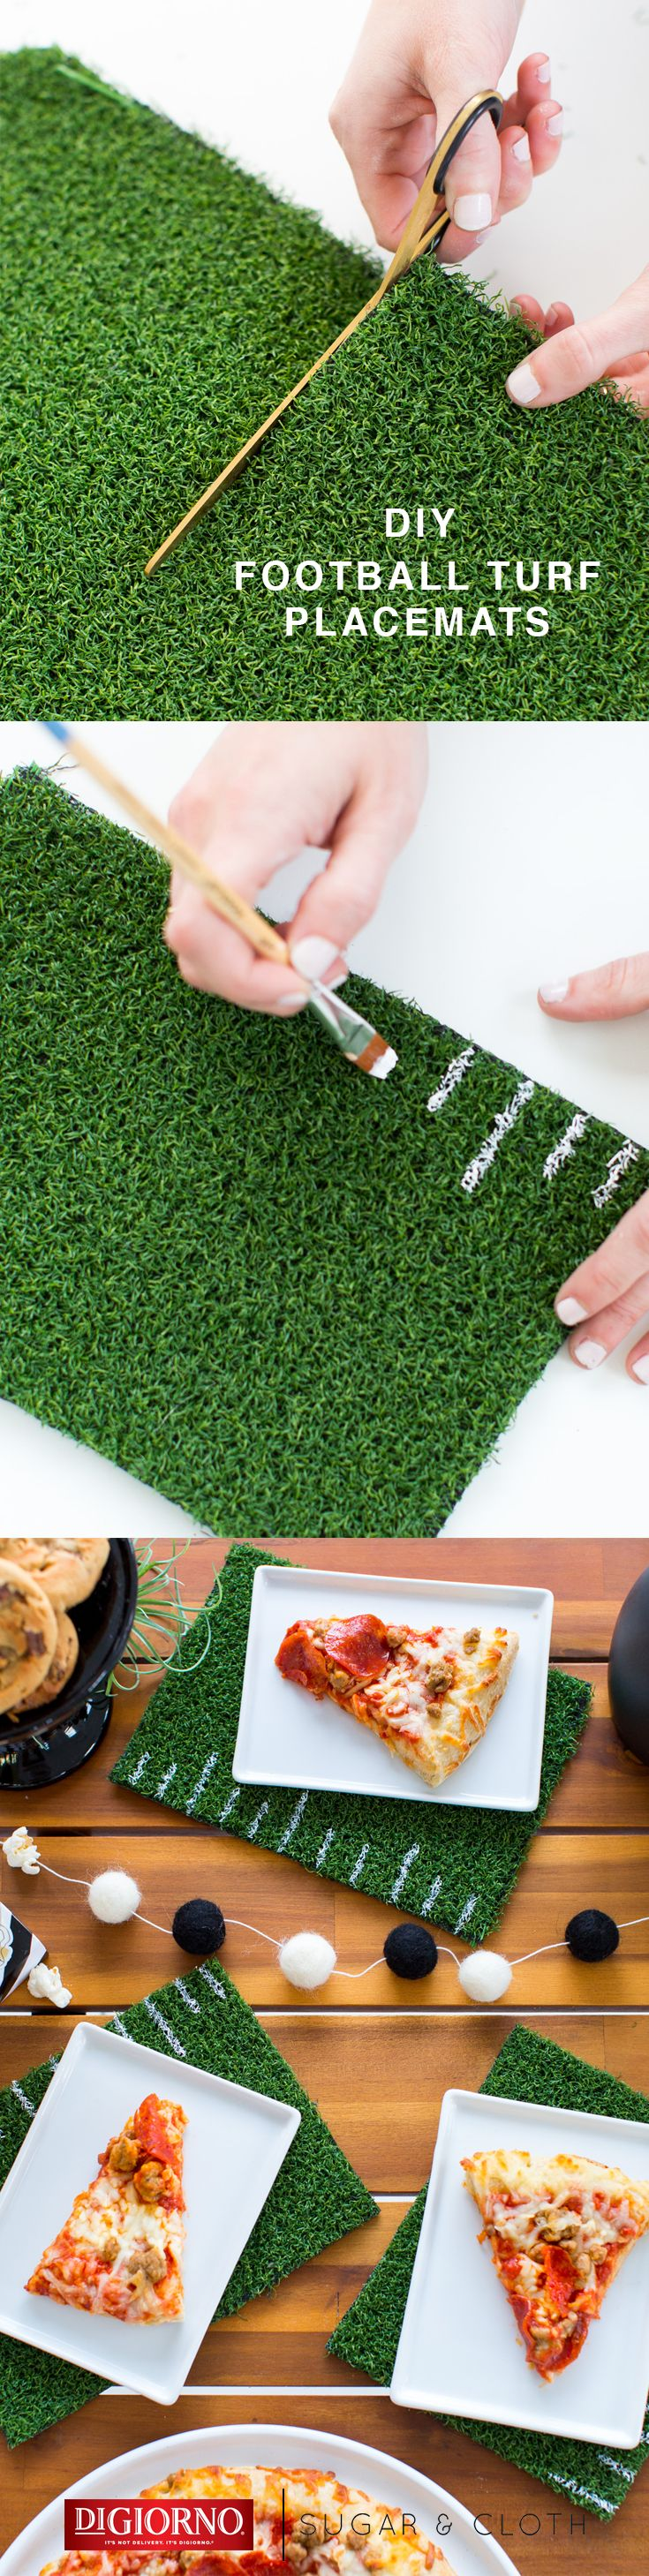 Take your football tailgate up a notch with these DIY turf placements from our partner, @SugarAndCloth. Supplies: DIGIORNO Original RISING CRUST pizza, astro turf, scissors, paint brush, white craft paint. 1. Cut astro turf to rectangular size of choice. 2. Use thin paint brush and white paint to add lines and yard numbers along edge(s). 3. Bake DIGIORNO Original RISING CRUST pizza per instructions. 4. Cut into slices and serve on plates, atop new placemats; enjoy!